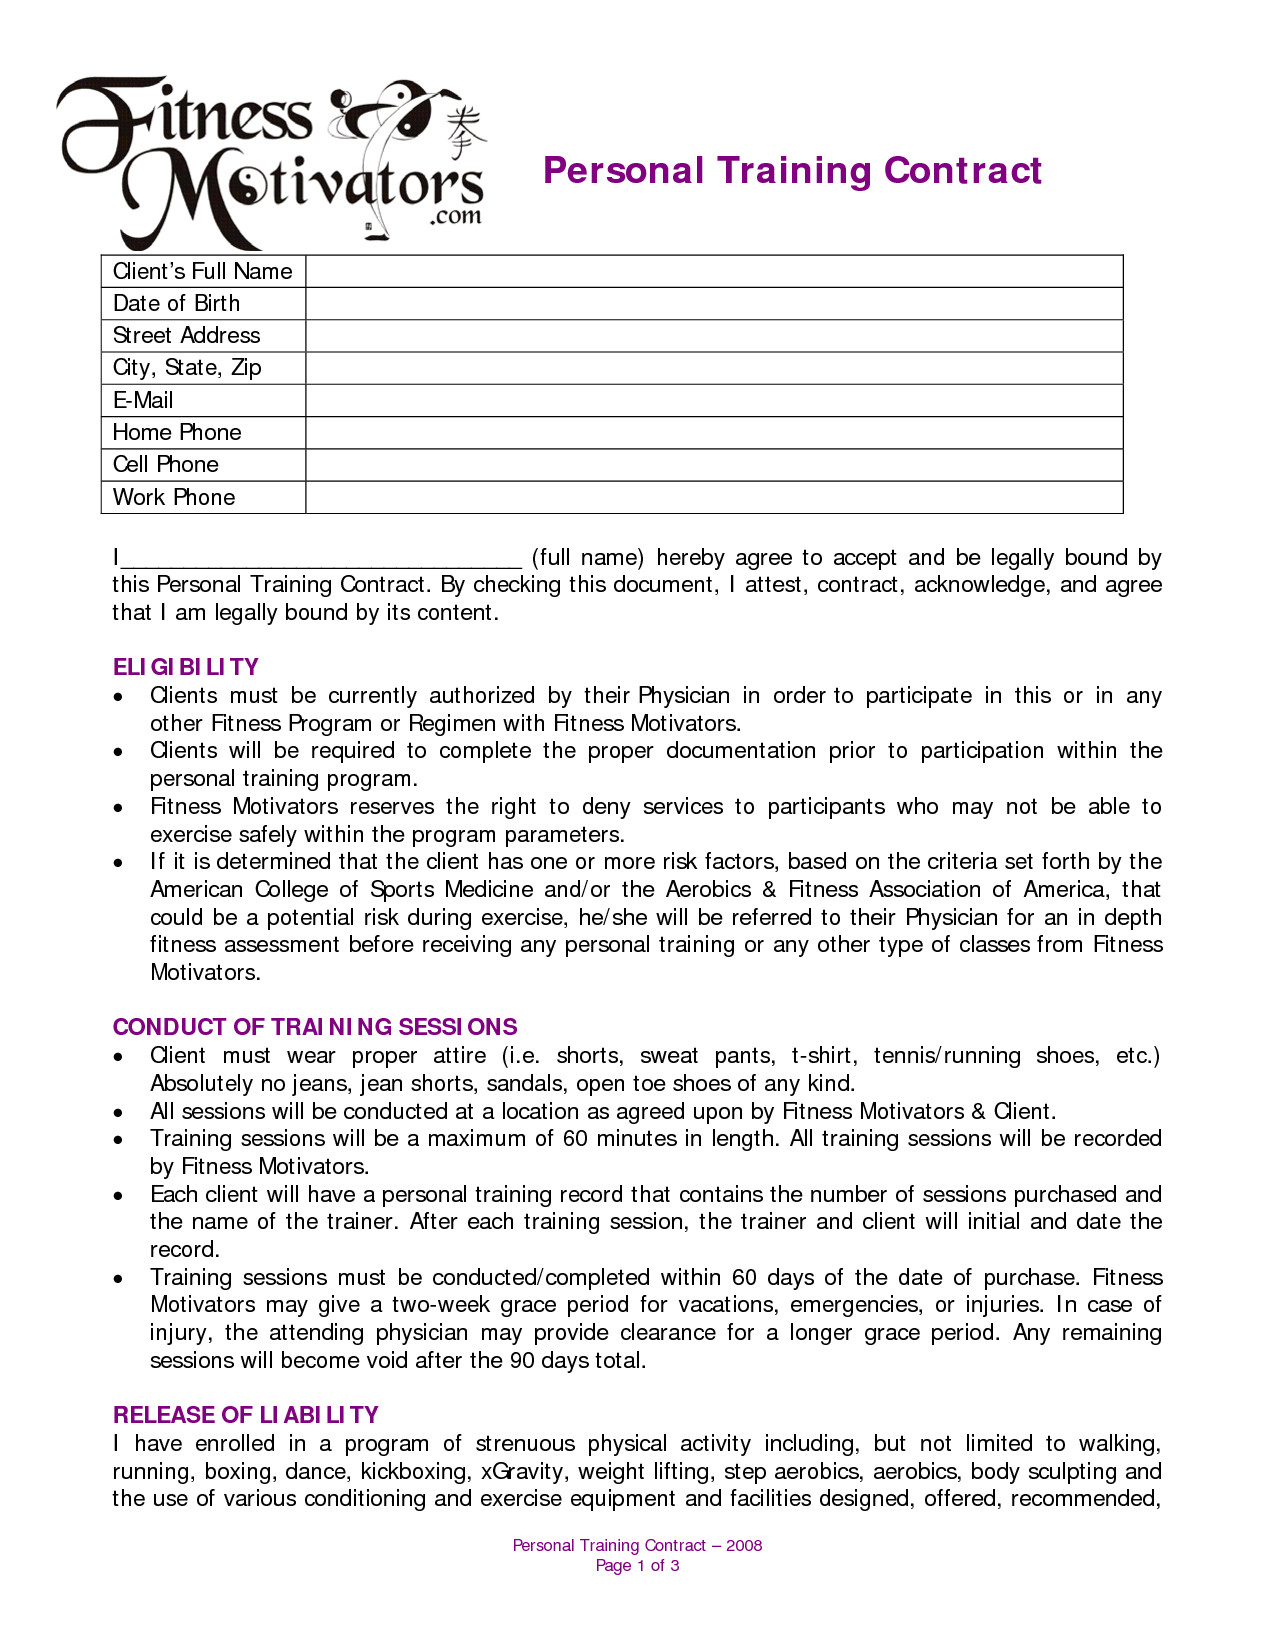 Personal Training Contracts Template Personal Training Contract Agreement